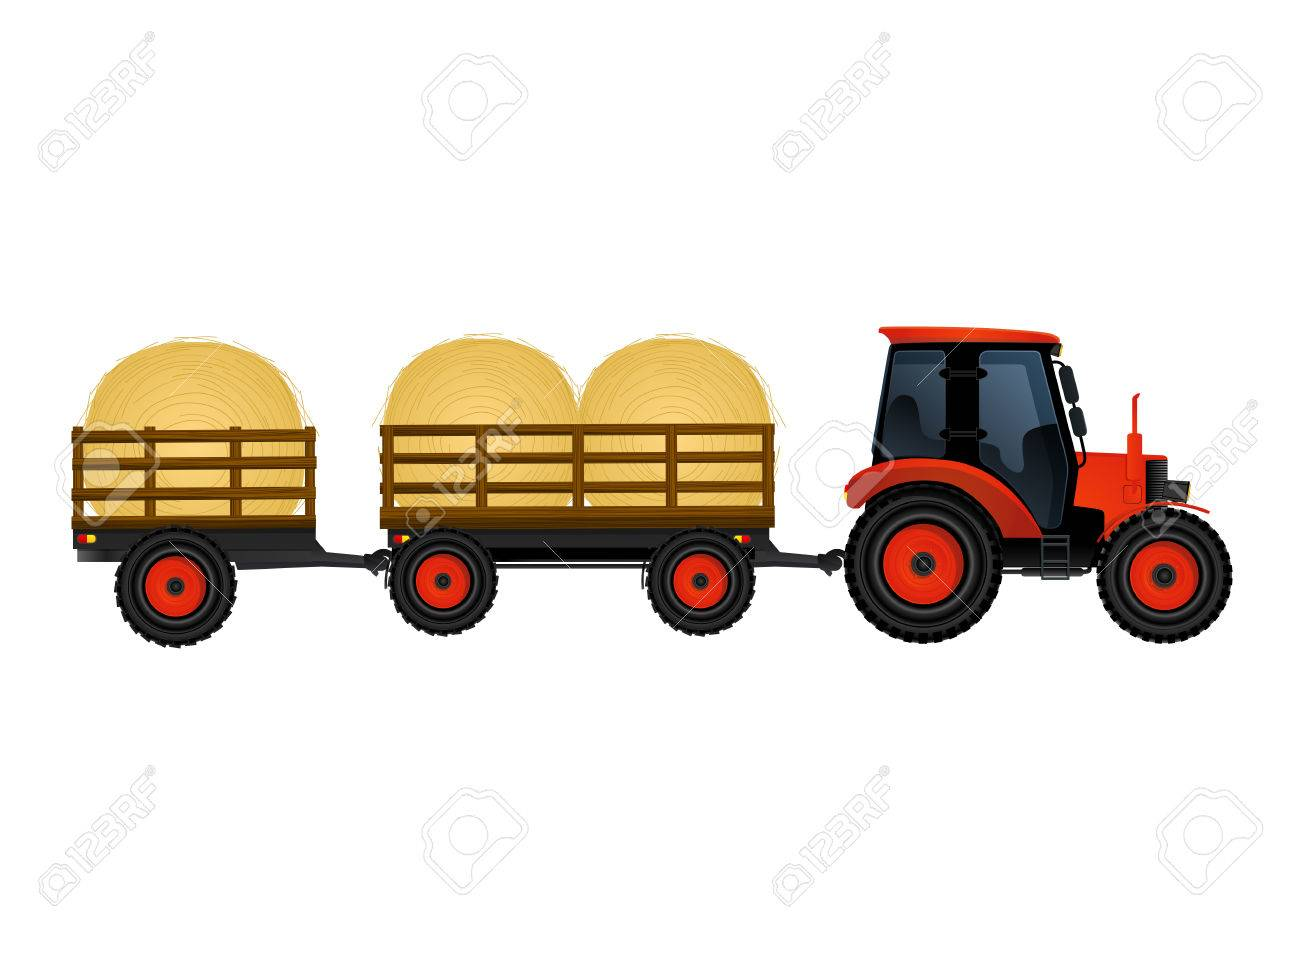 farm tractor with wagons transporting hay royalty free cliparts rh 123rf com hay wagon clipart free hay wagon clipart